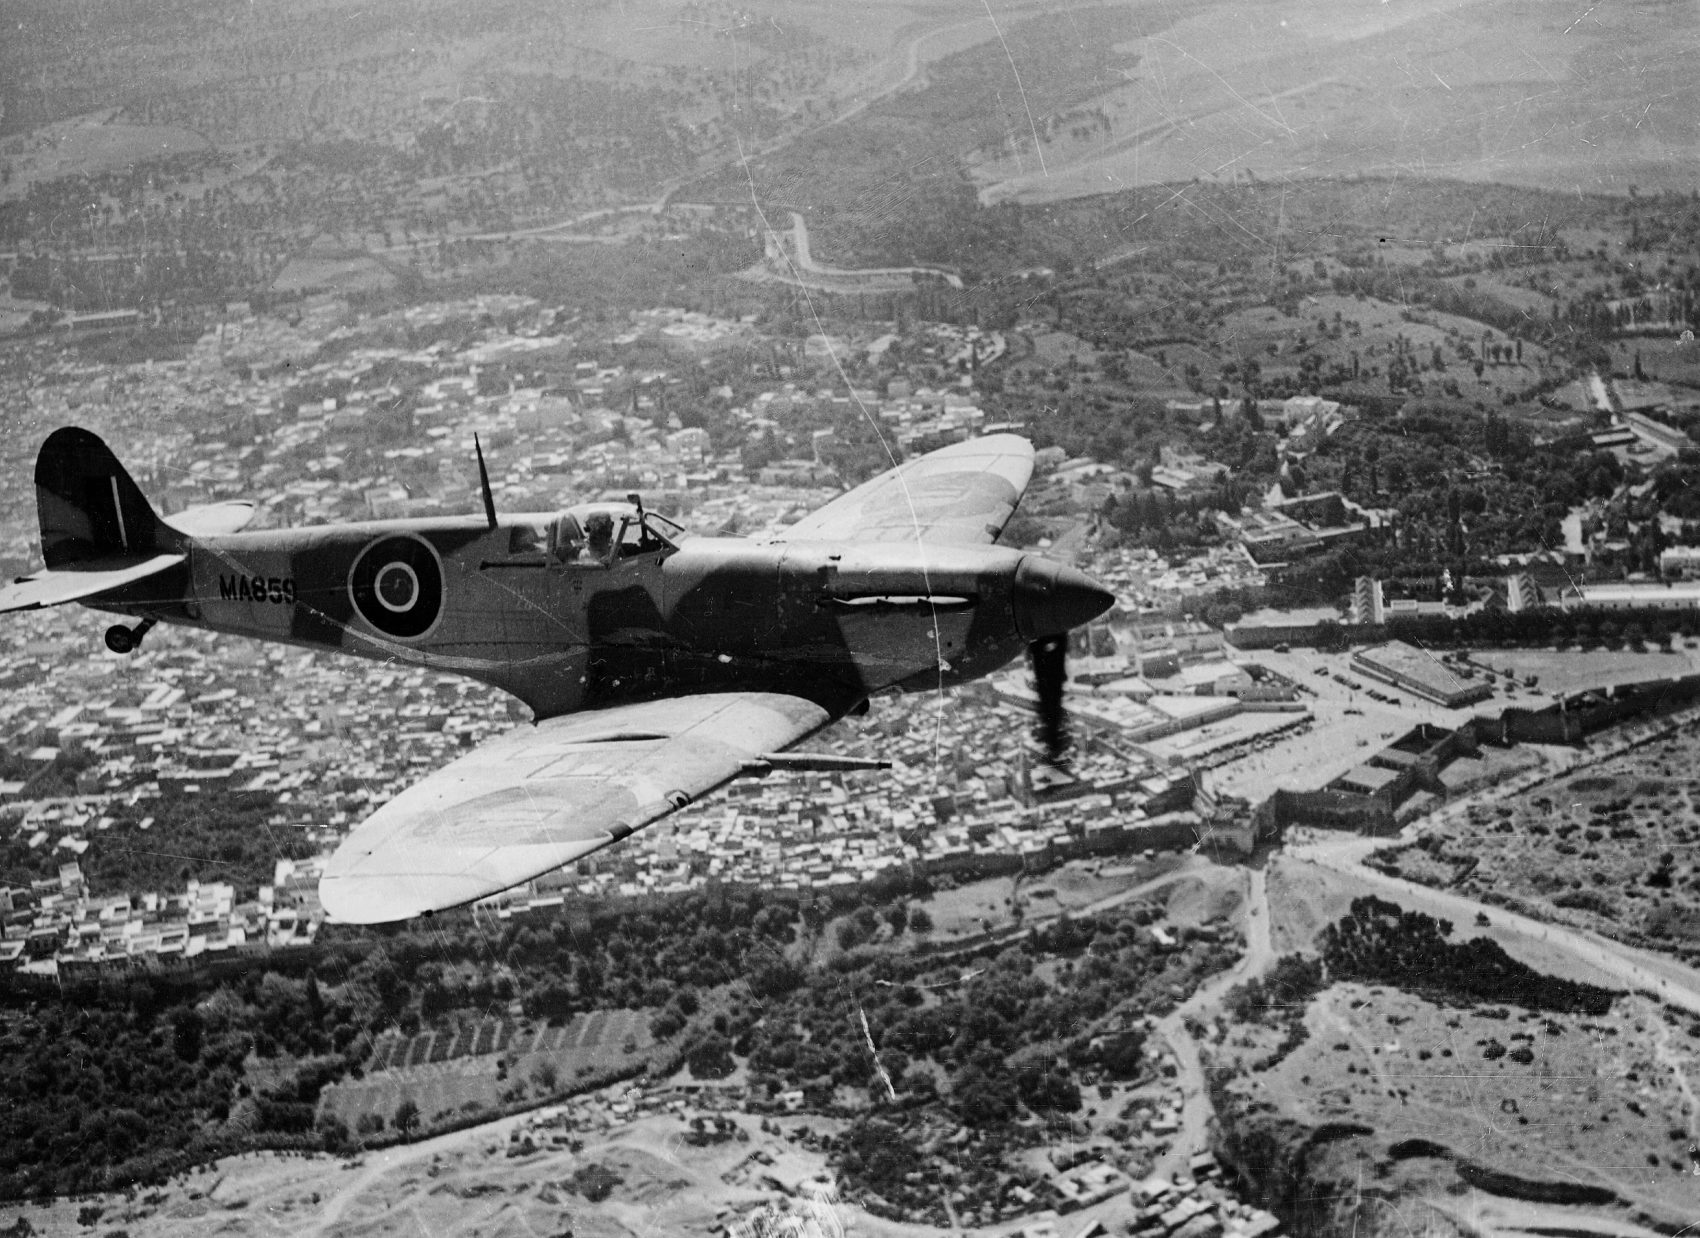 The Most Beautiful Machine To Fly': Iconic Spitfire Takes